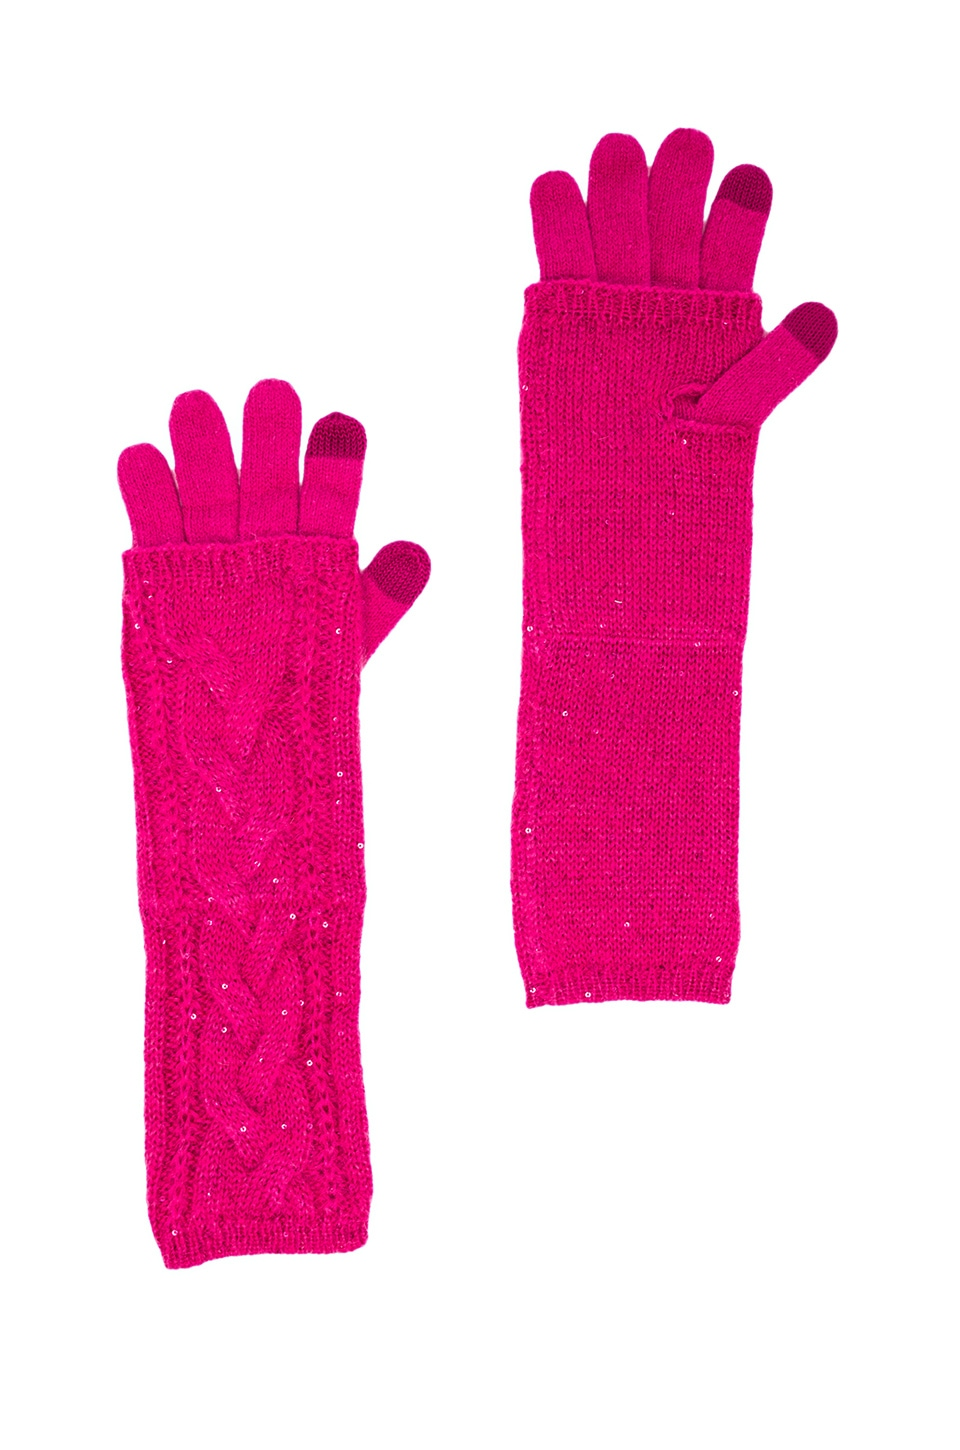 Juicy Couture Sparkle Cable Layered Texting Gloves in Cashmere Rose